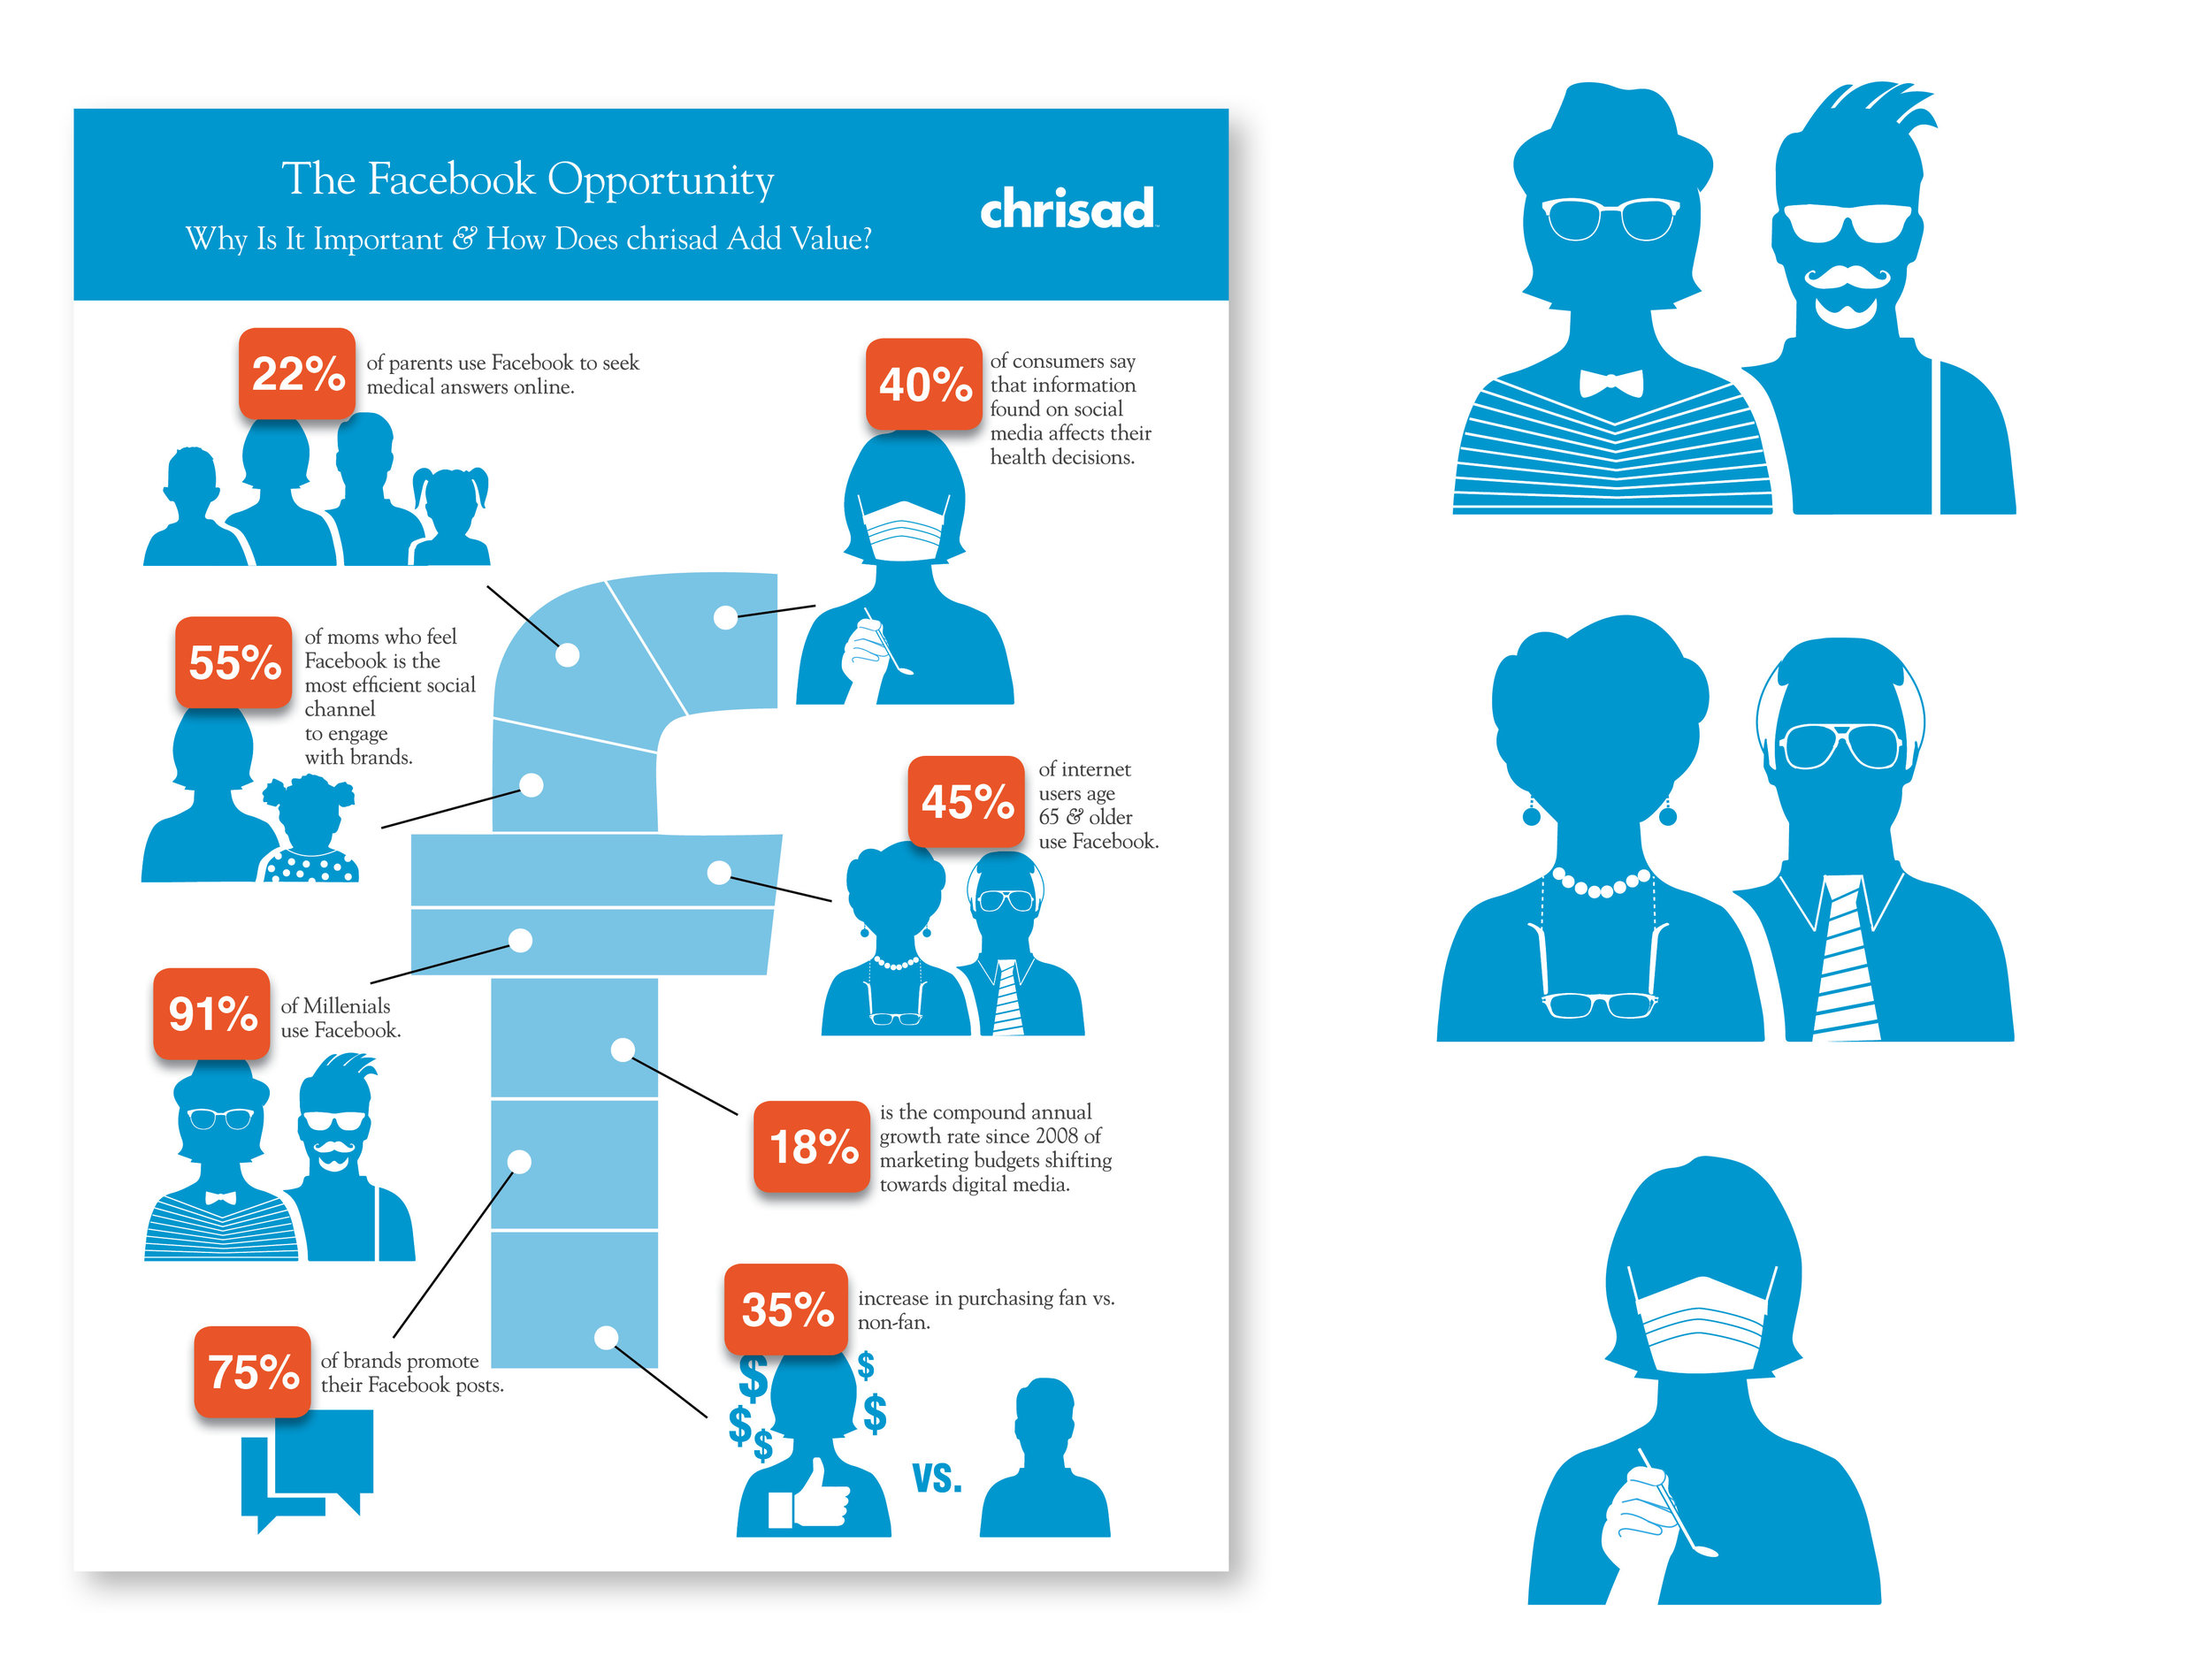 Infographic/Icon Designer   Created custom character icons based on existing Facebook icons. Designed graphic layout of infographic highlighting benefits of social media.  Employer: Chrisad, Inc.